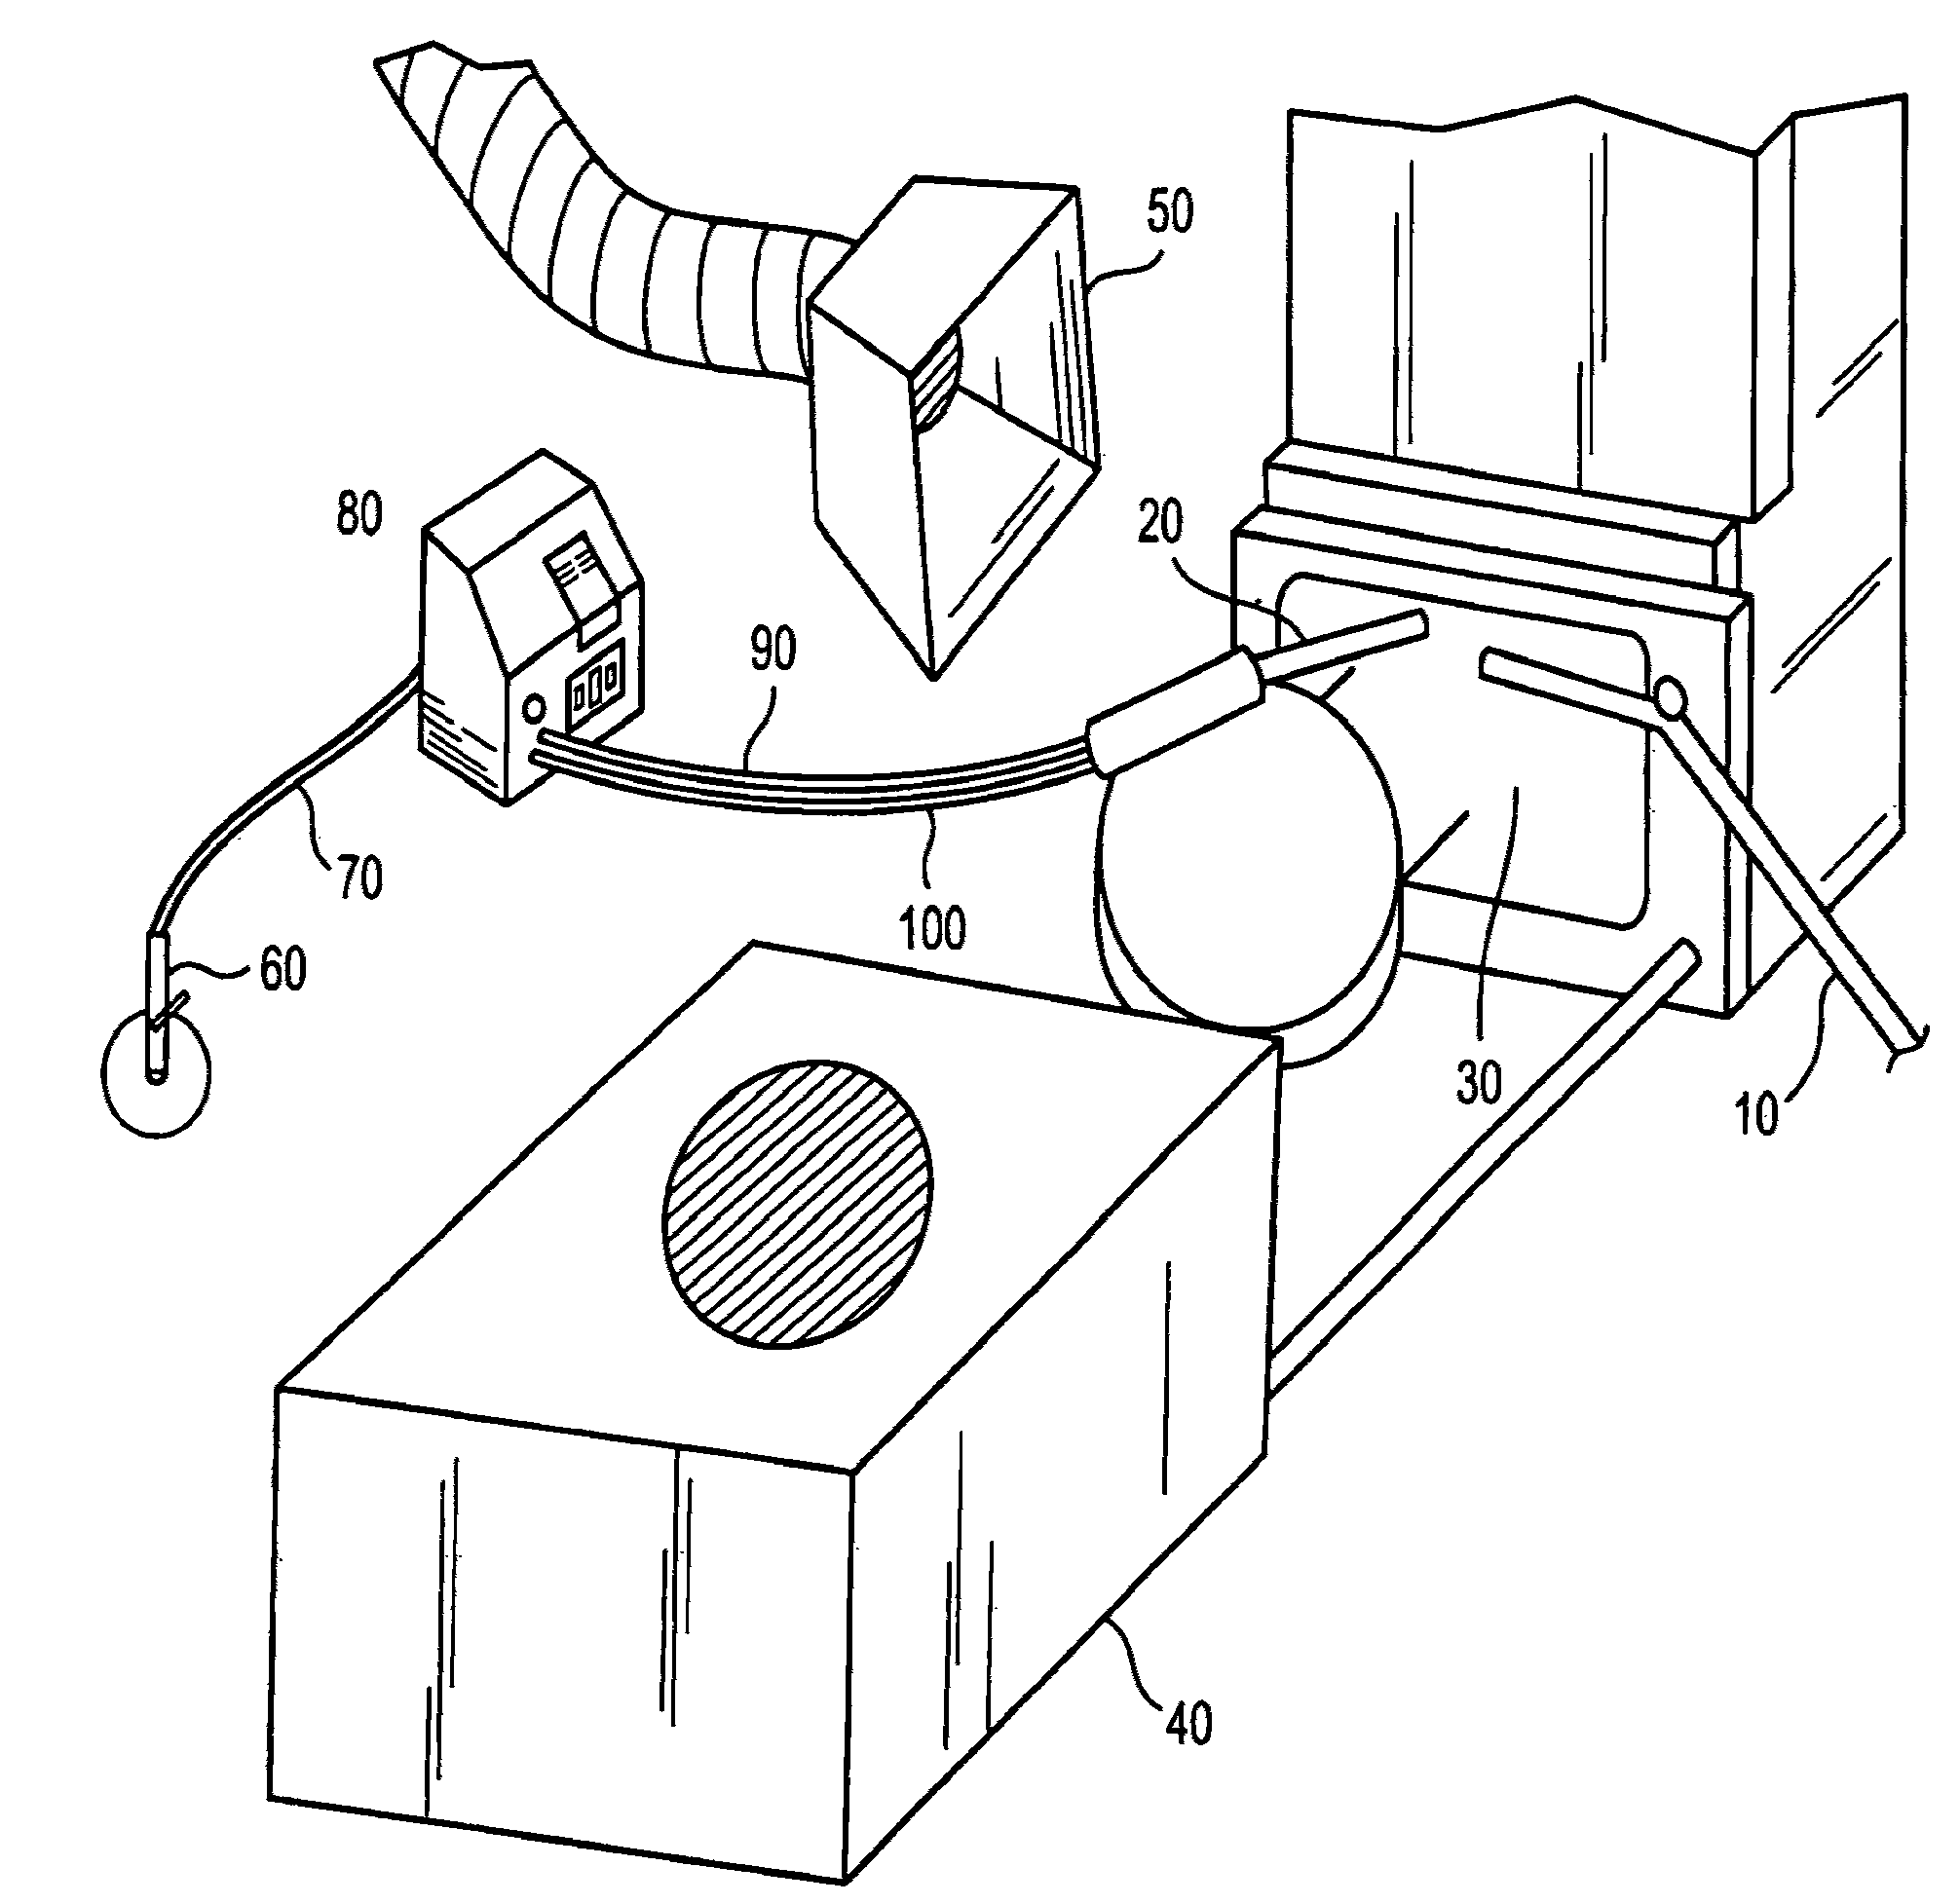 patent us8292698 on line chamber cleaning using dry ice blasting Stationary Sand Blasting Machine patent drawing